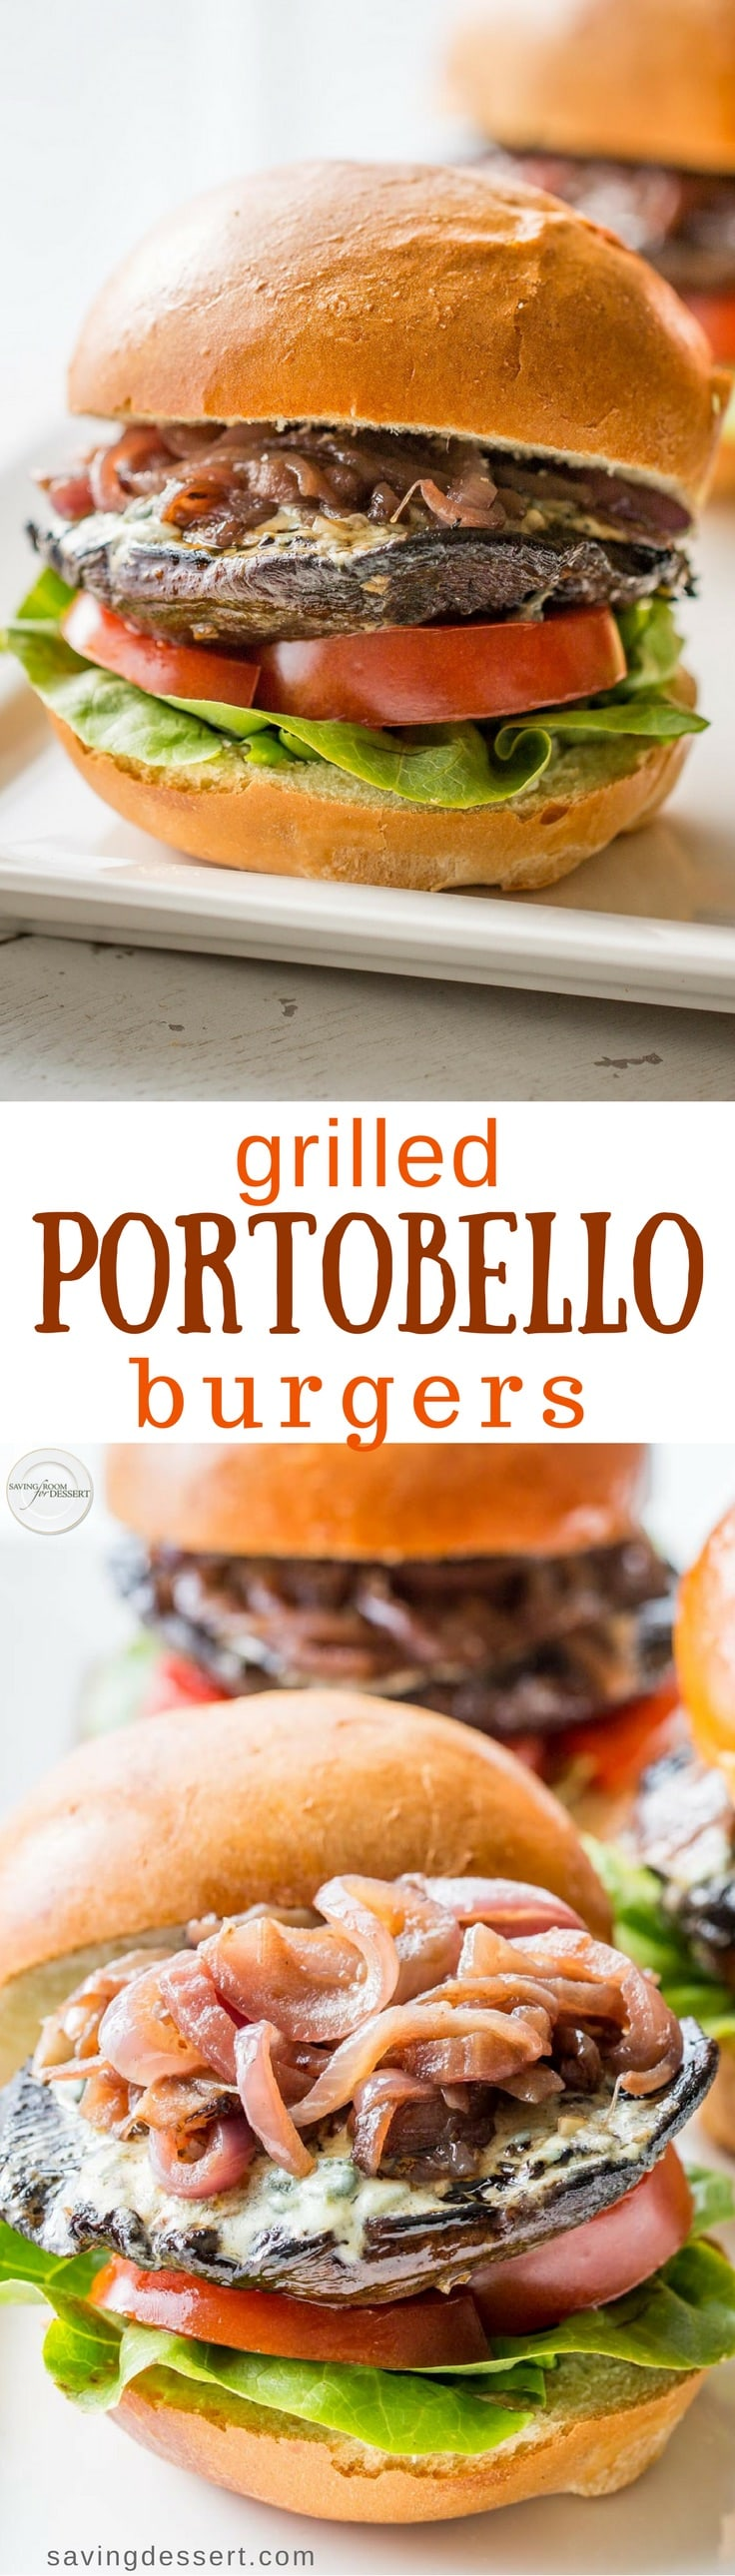 Portobello Burgers with Blue Cheese and Onions Grilled Portobello Burgers with Blue Cheese and Onions - a terrific meatless Monday meal that's inexpensive, quick, easy and will make the burger loving people in your family very happy!